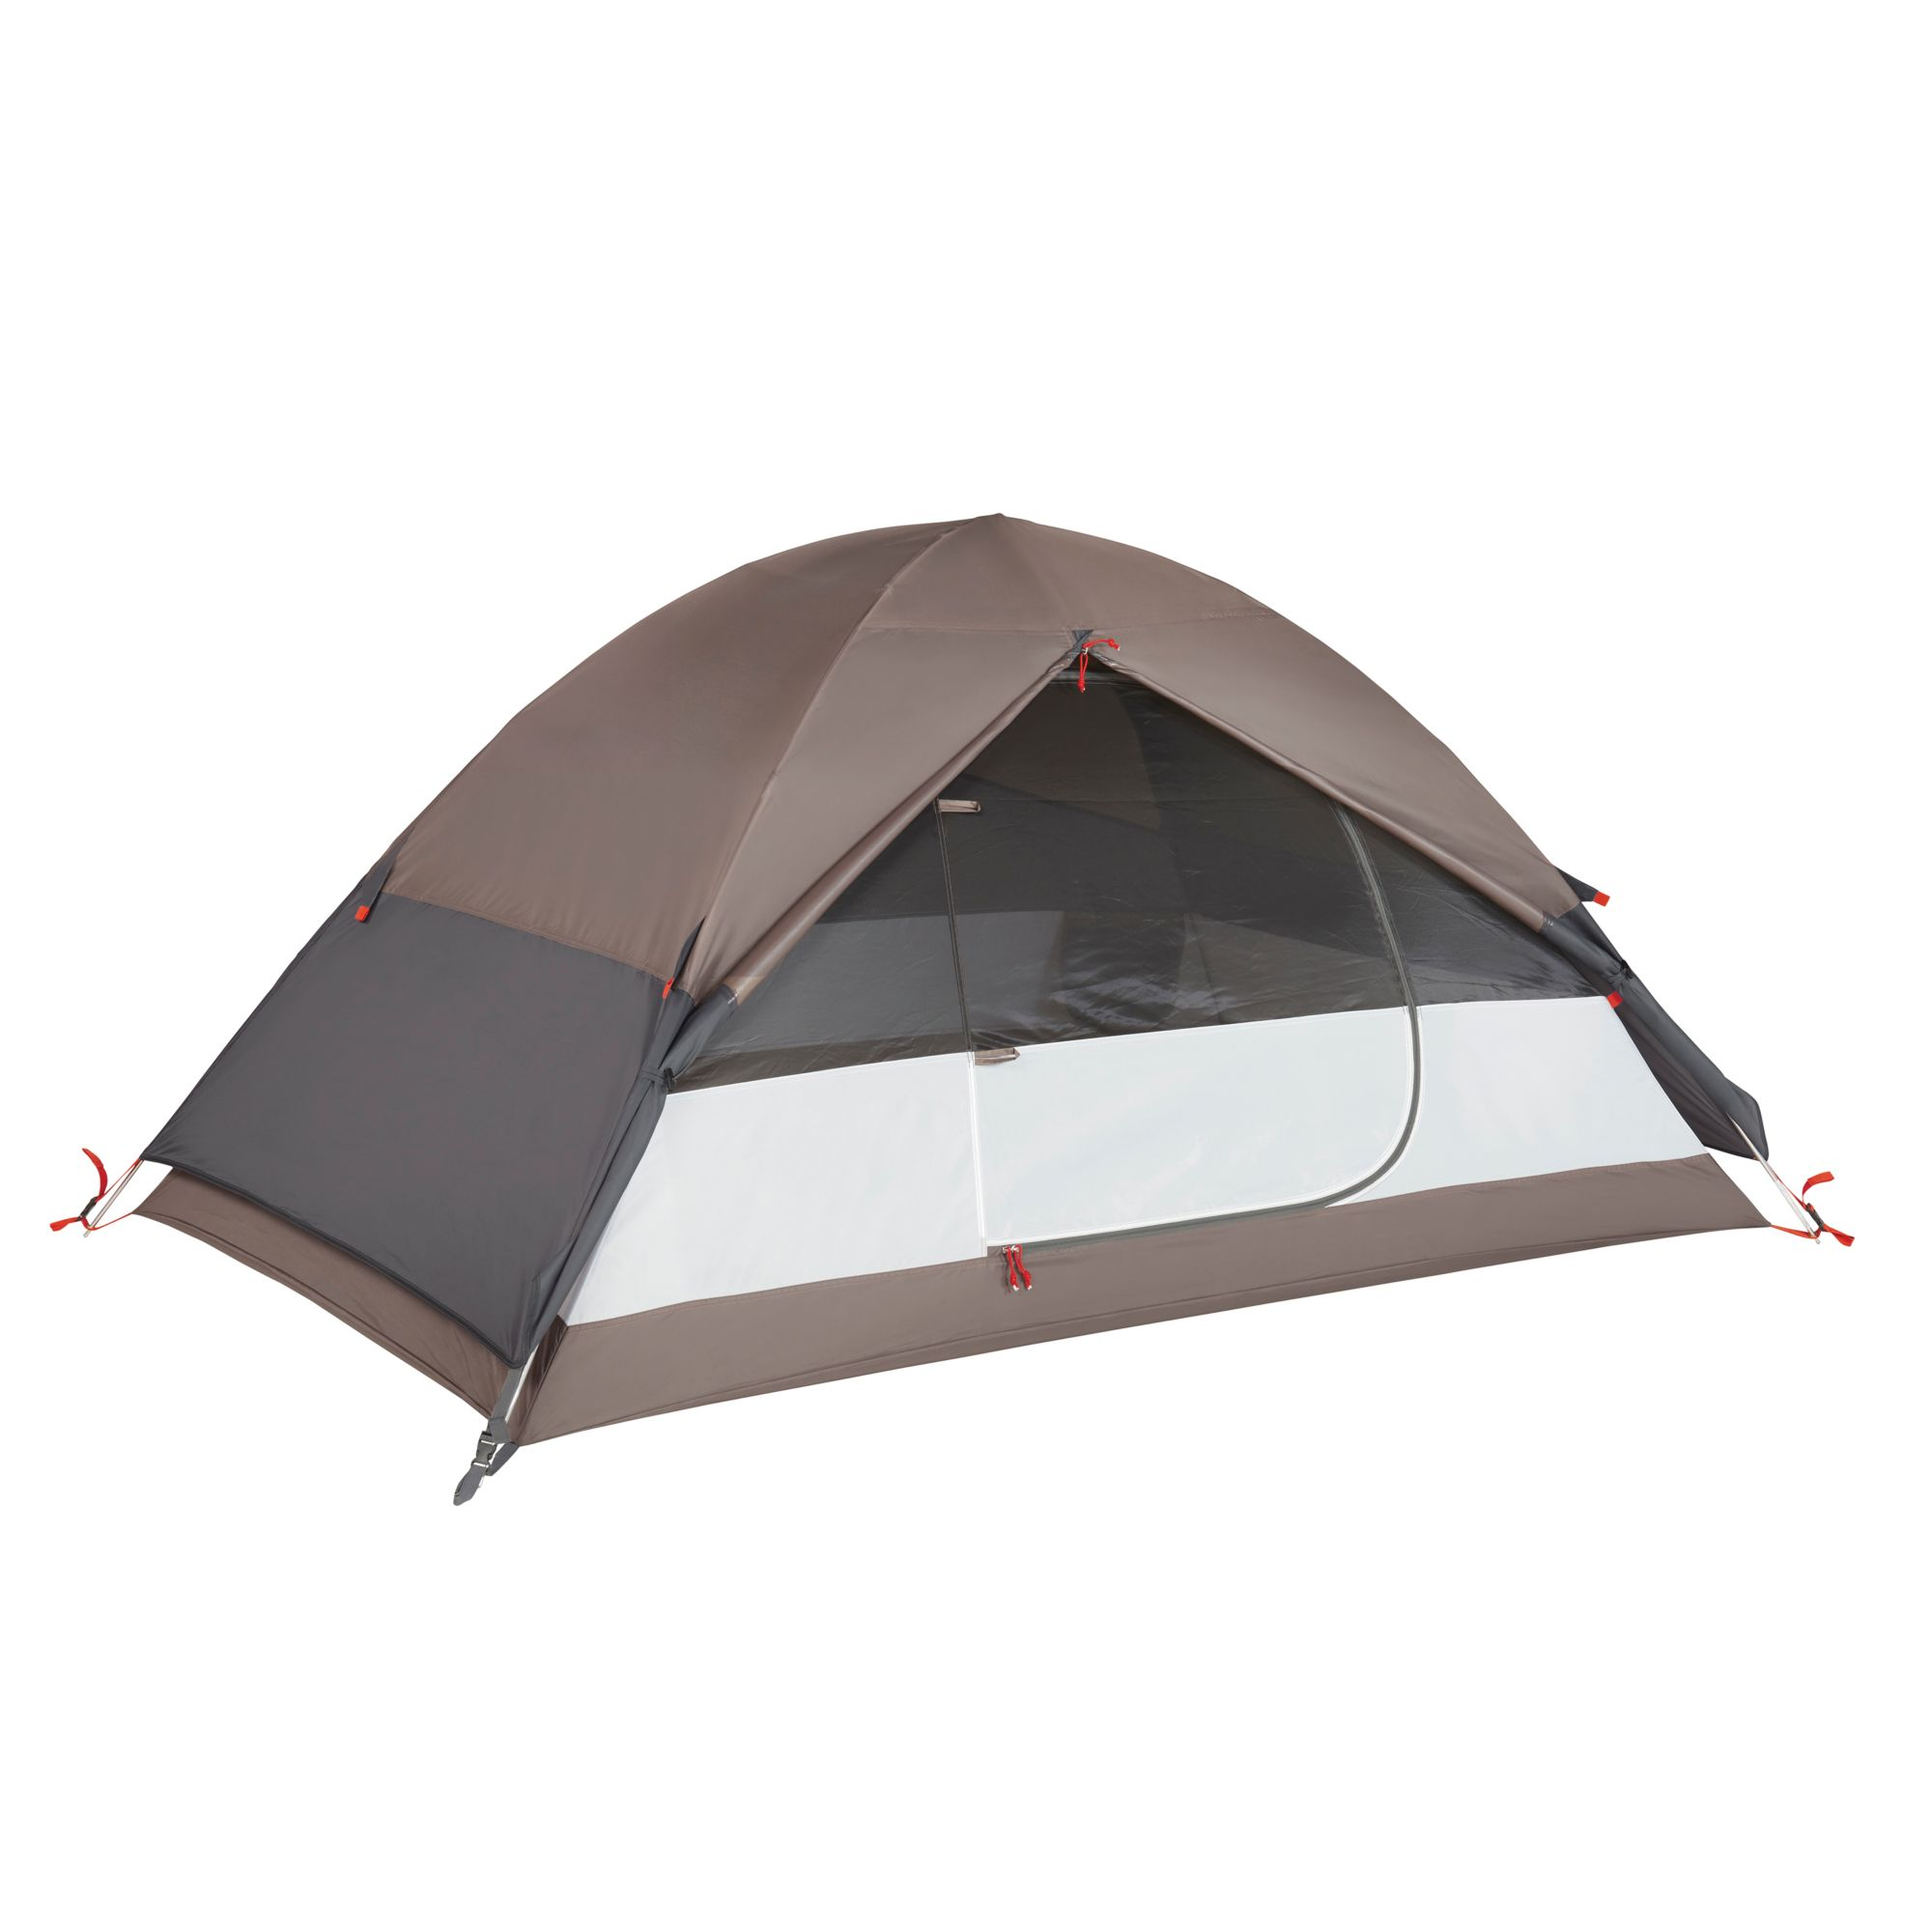 Product Image · Kelty Circuit 2 Person Tent  sc 1 st  DICKu0027S Sporting Goods & Backpacking Tents | Best Price Guarantee at DICKu0027S